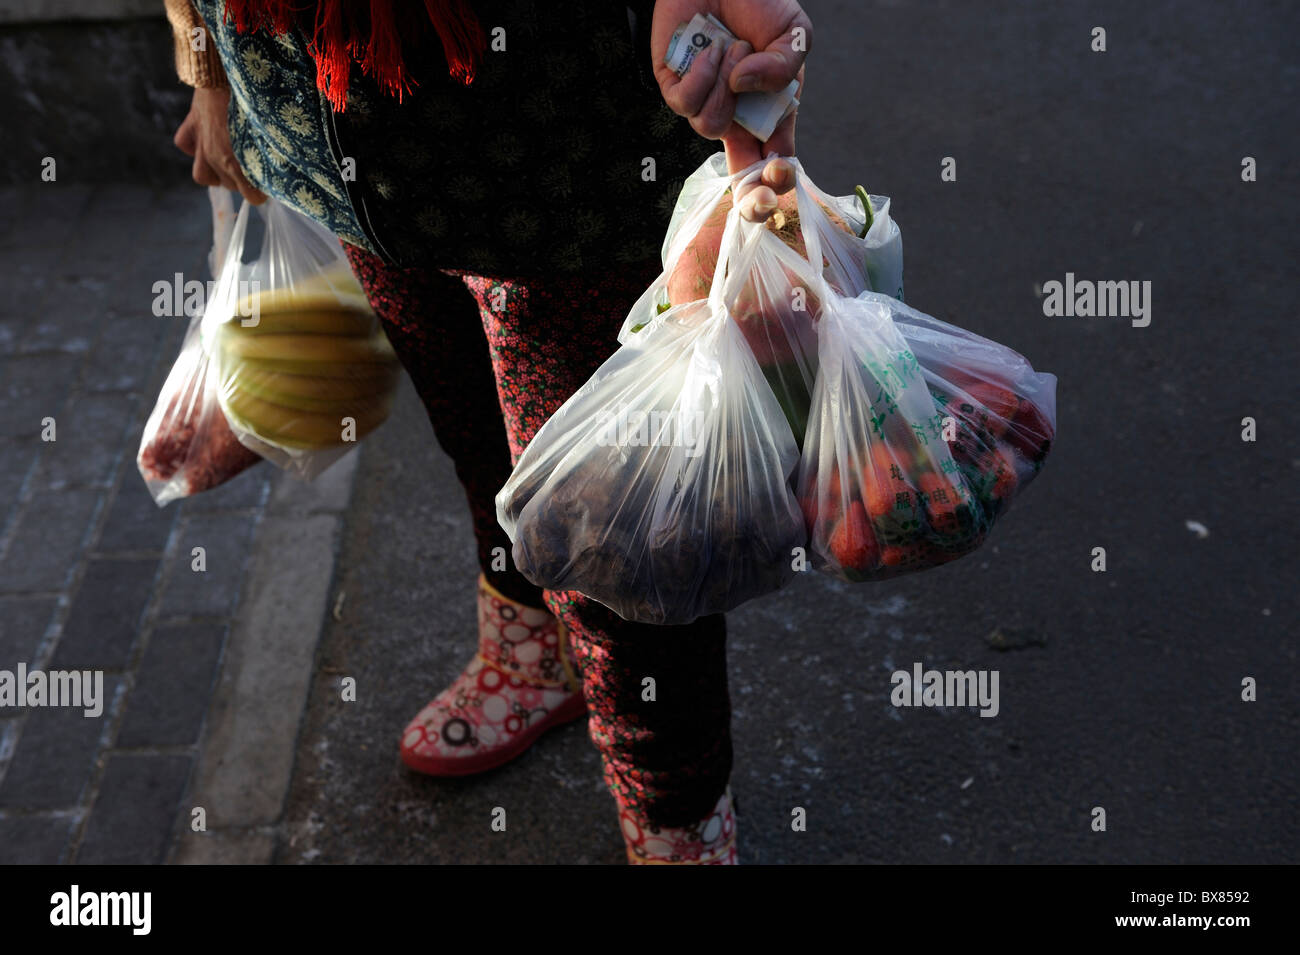 A lady carries bags of groceries back home after shopping at a market in Beijing, China.11-Dec-2010 - Stock Image